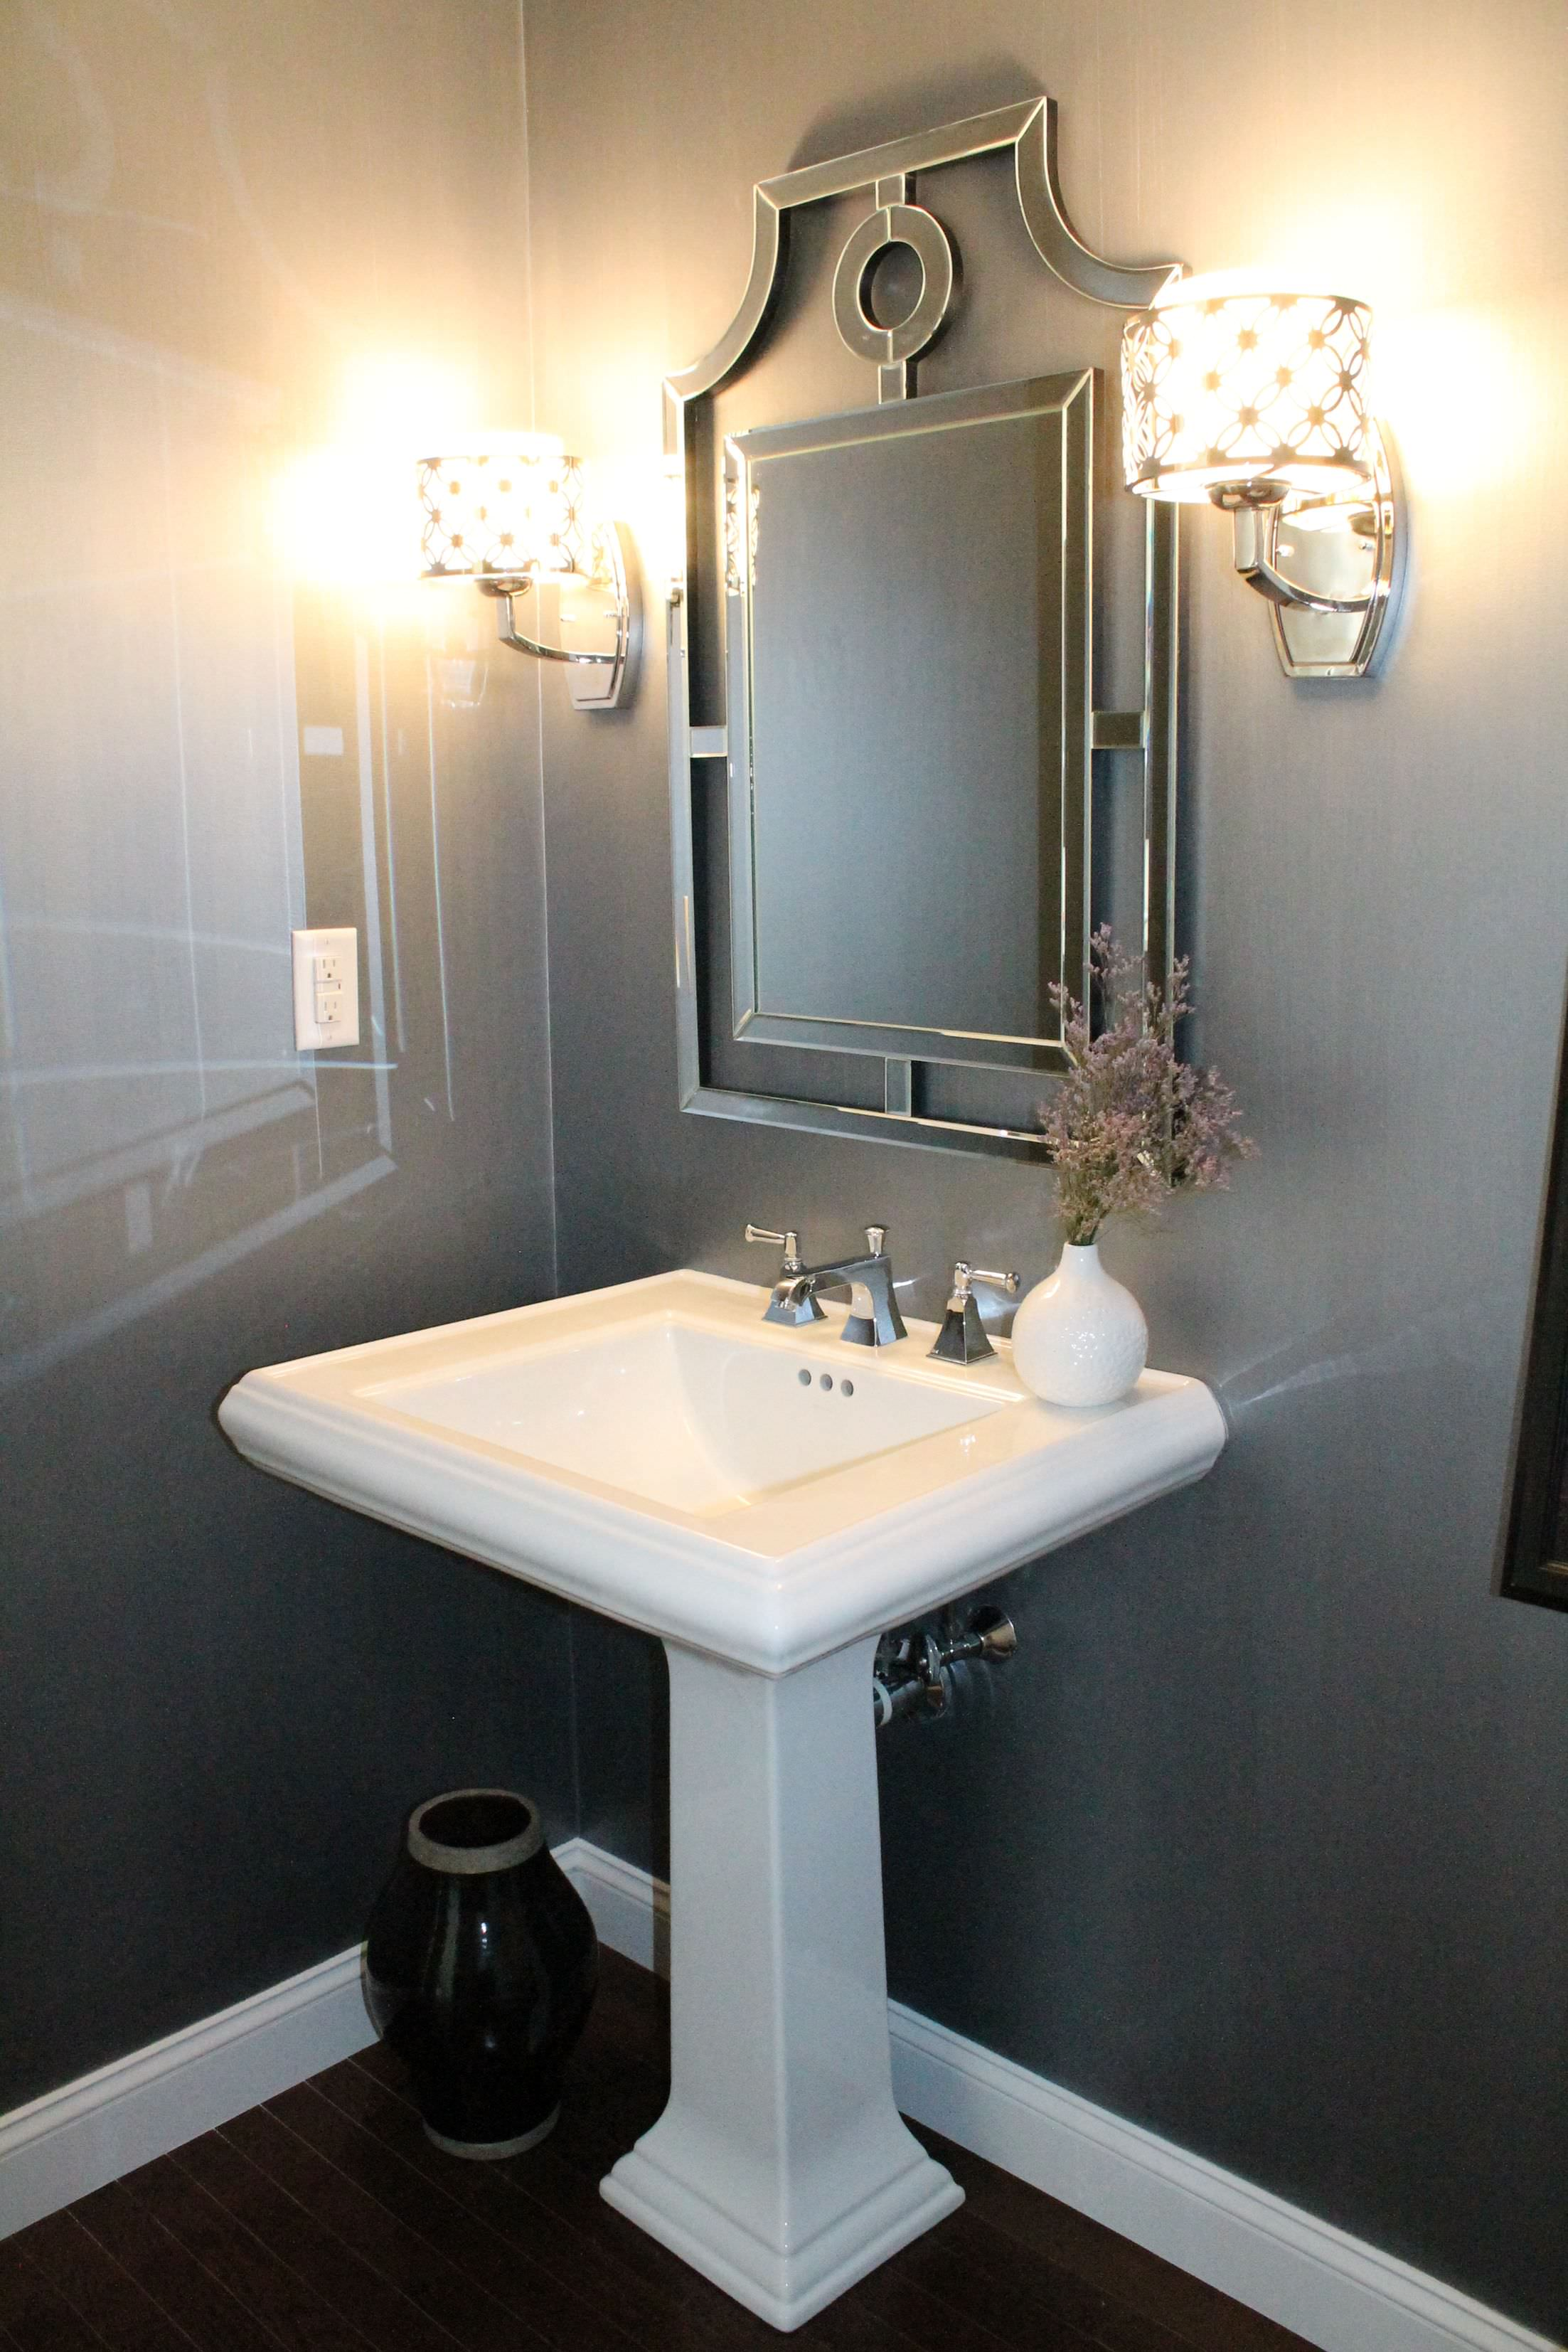 Pretty How To Paint A Bathtub Small Paint For Bathtub Rectangular How To Paint A Tub Paint Tub Old Paint A Bathtub Soft Bathtub Repair Contractor